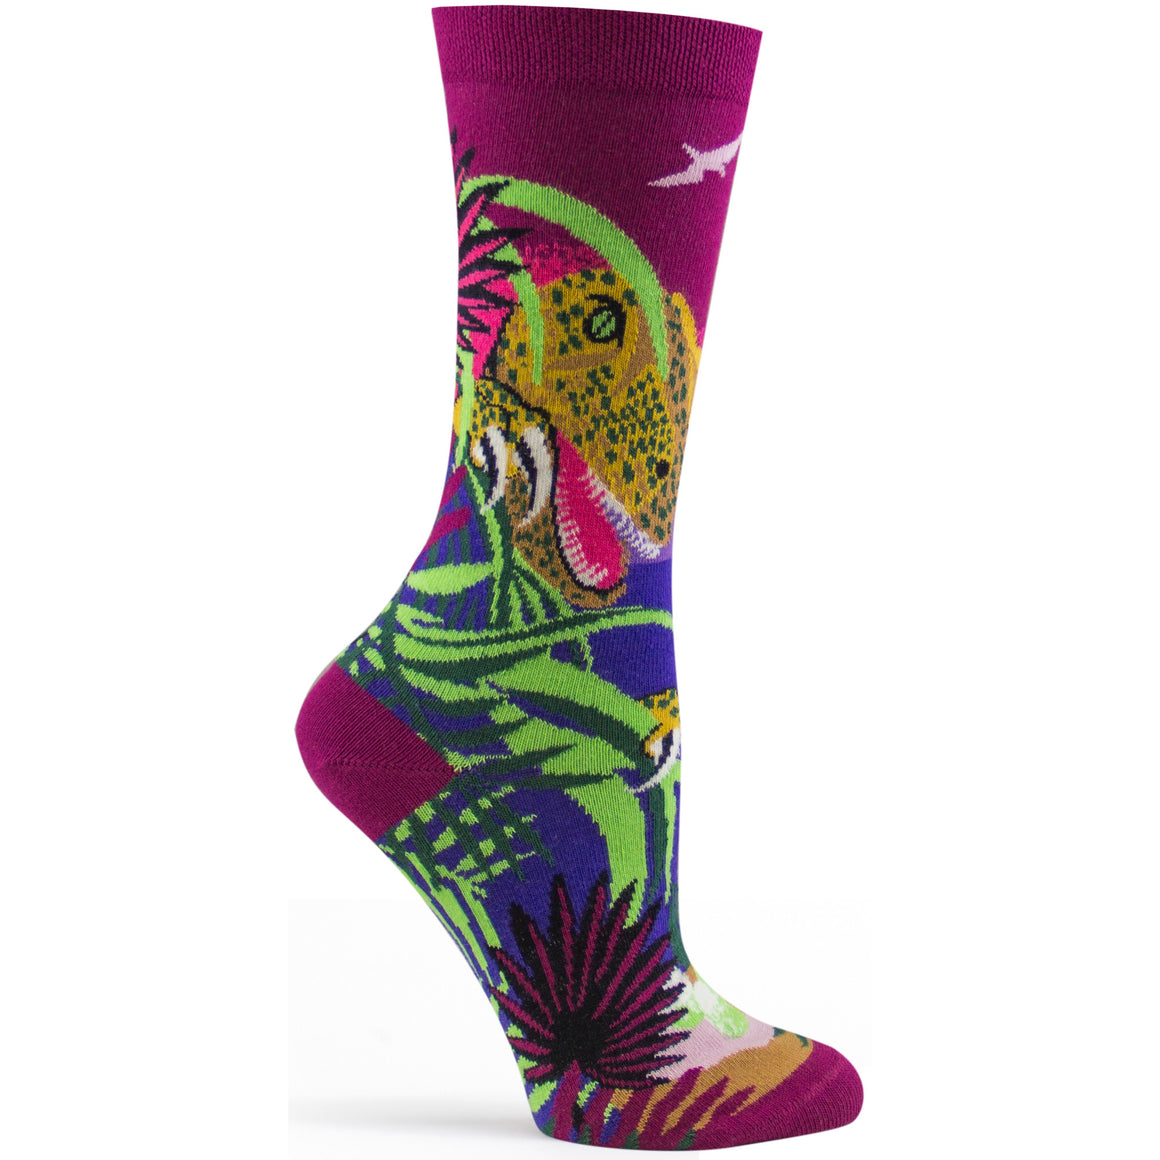 Ozone Design t-rex dinosaur womens novelty Sock in eggplant